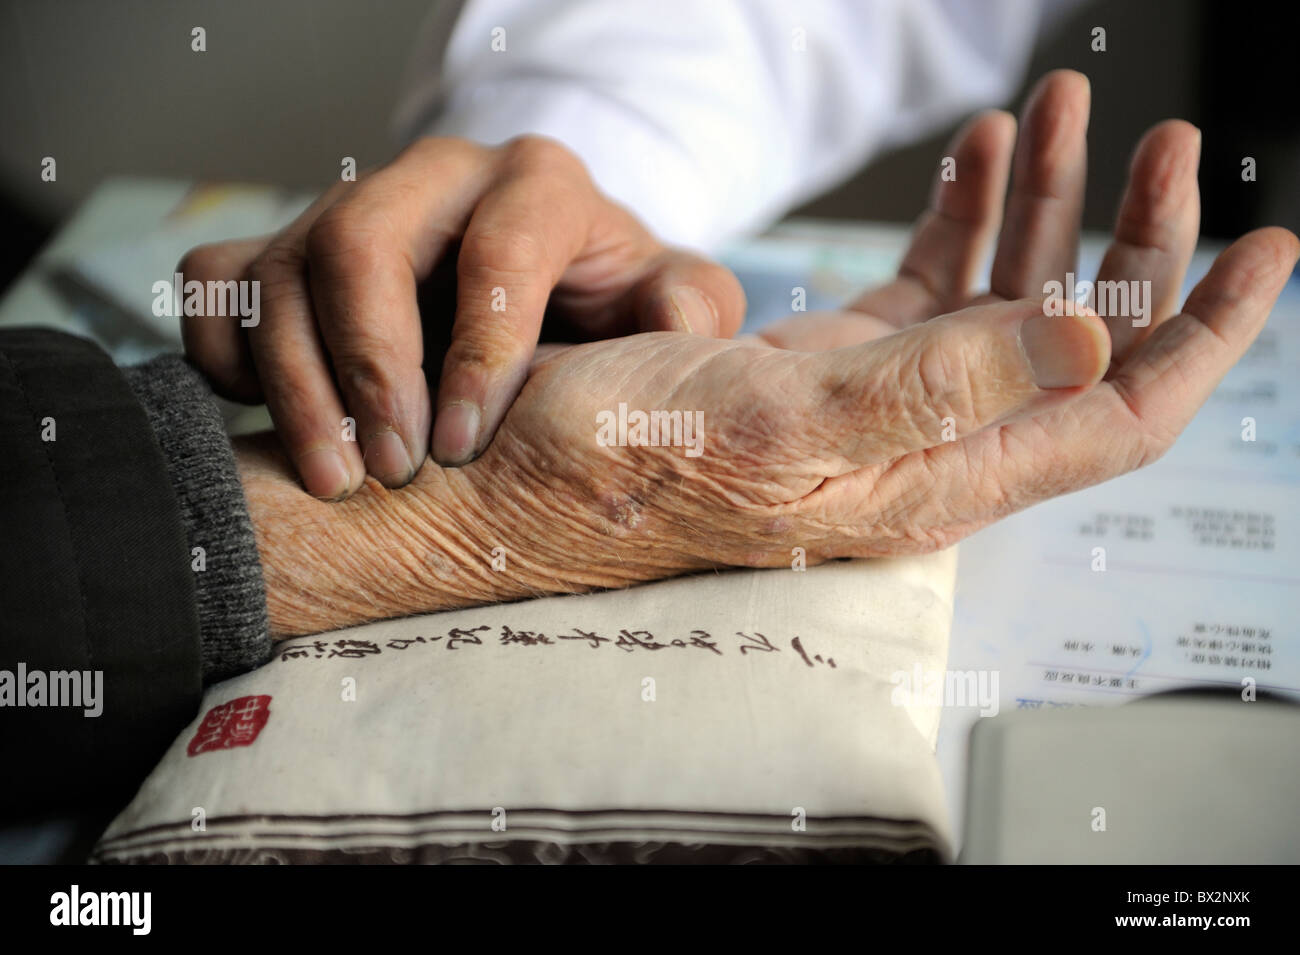 Doctor of traditional Chinese medicine checking an old man's pulse in a hospital in Beijing, China. 2010 - Stock Image